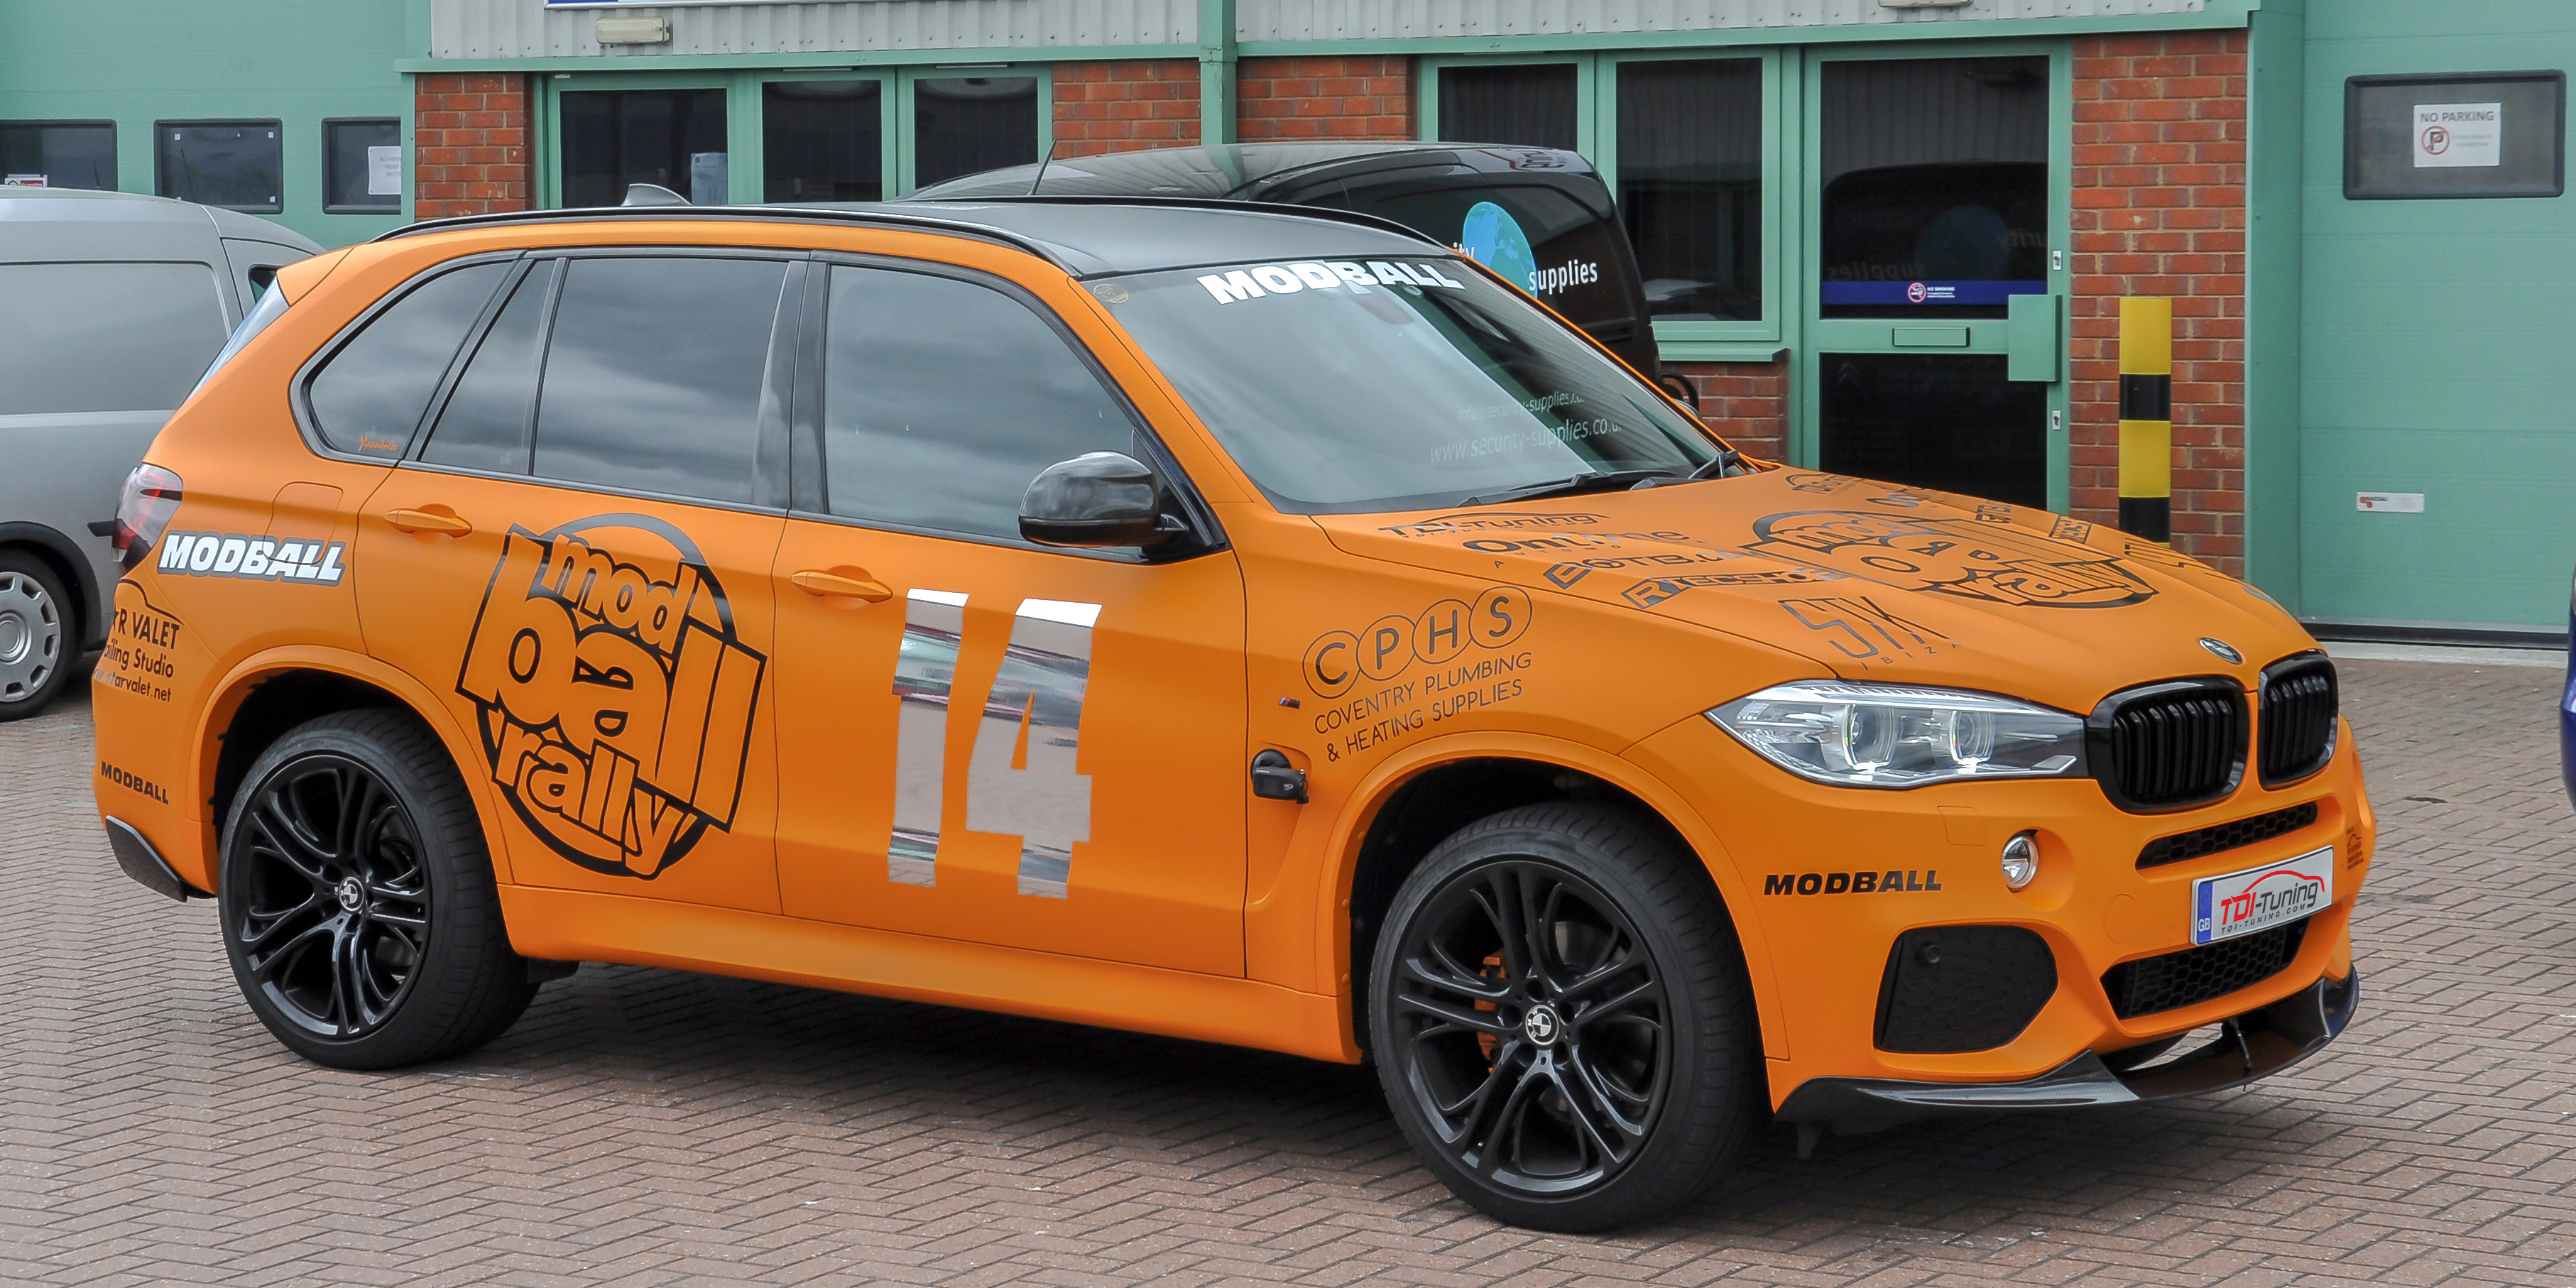 TDITuning  July Car of the Month  BMW X5  Modball Rally